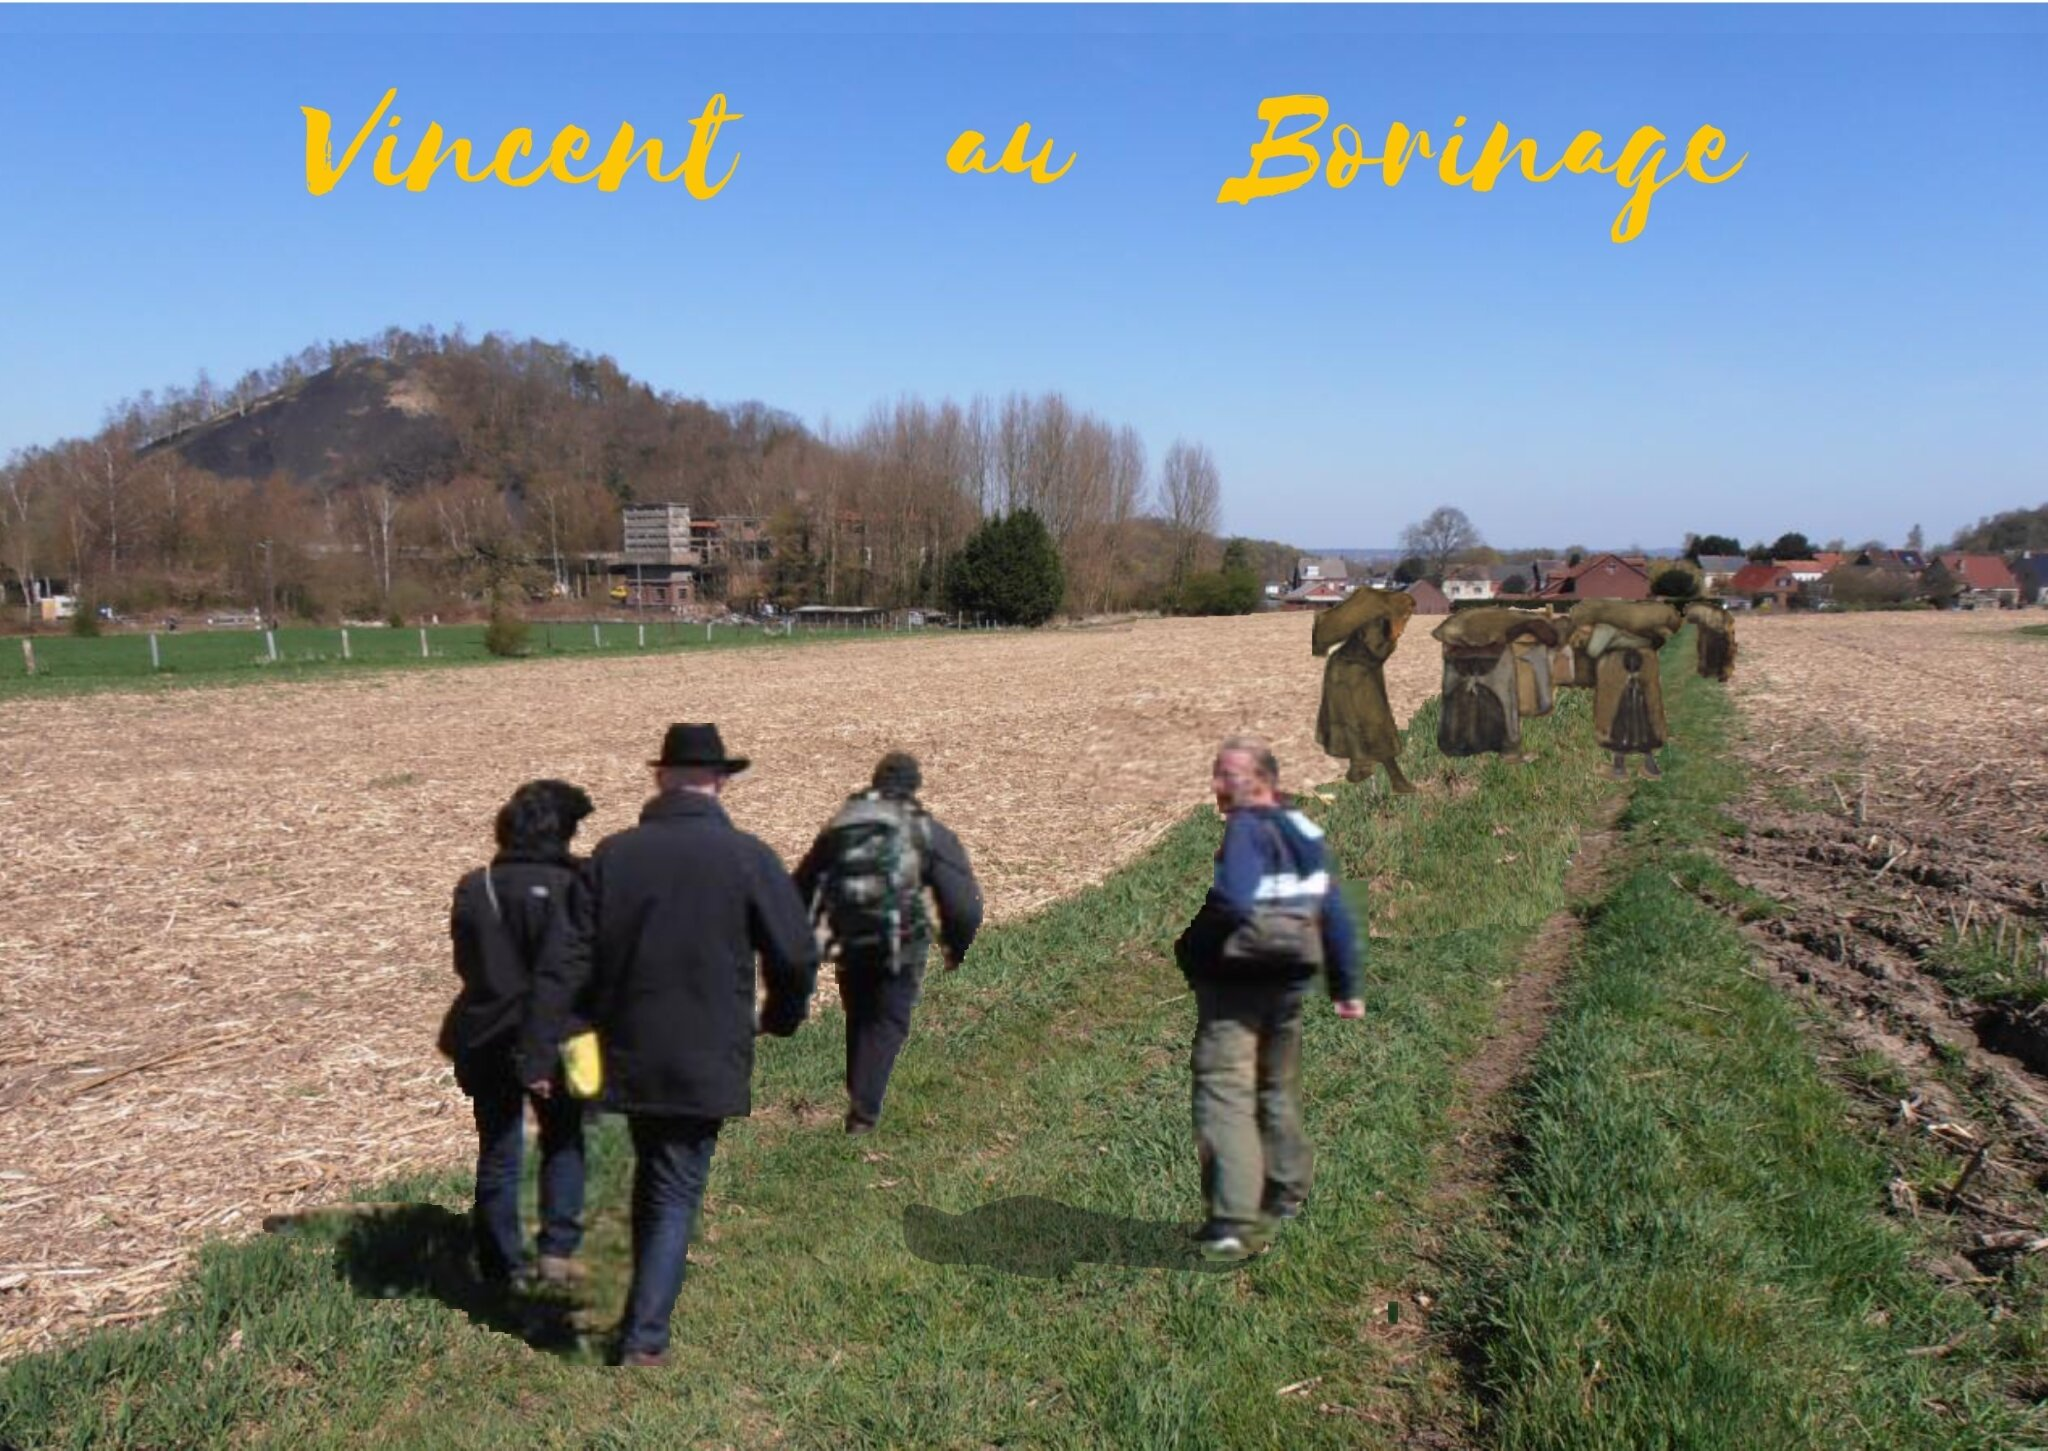 Vincent Van Gogh au Borinage 2019 : Promenades guidées / Guided walks / Geleide wandelingen